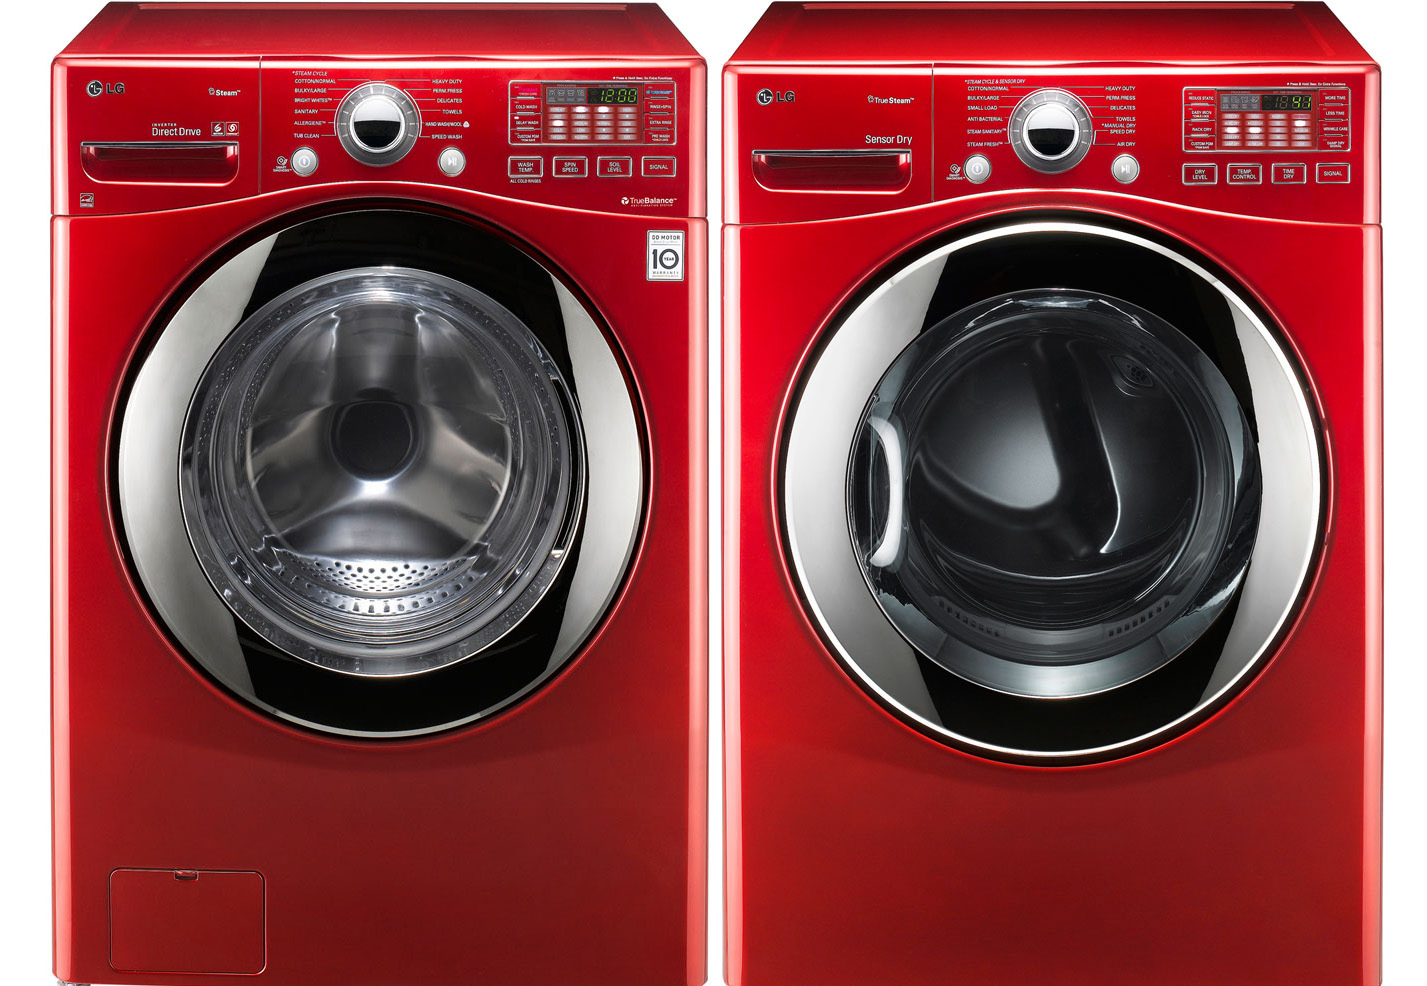 Washer And Dryers Lg Red Washer And Dryer